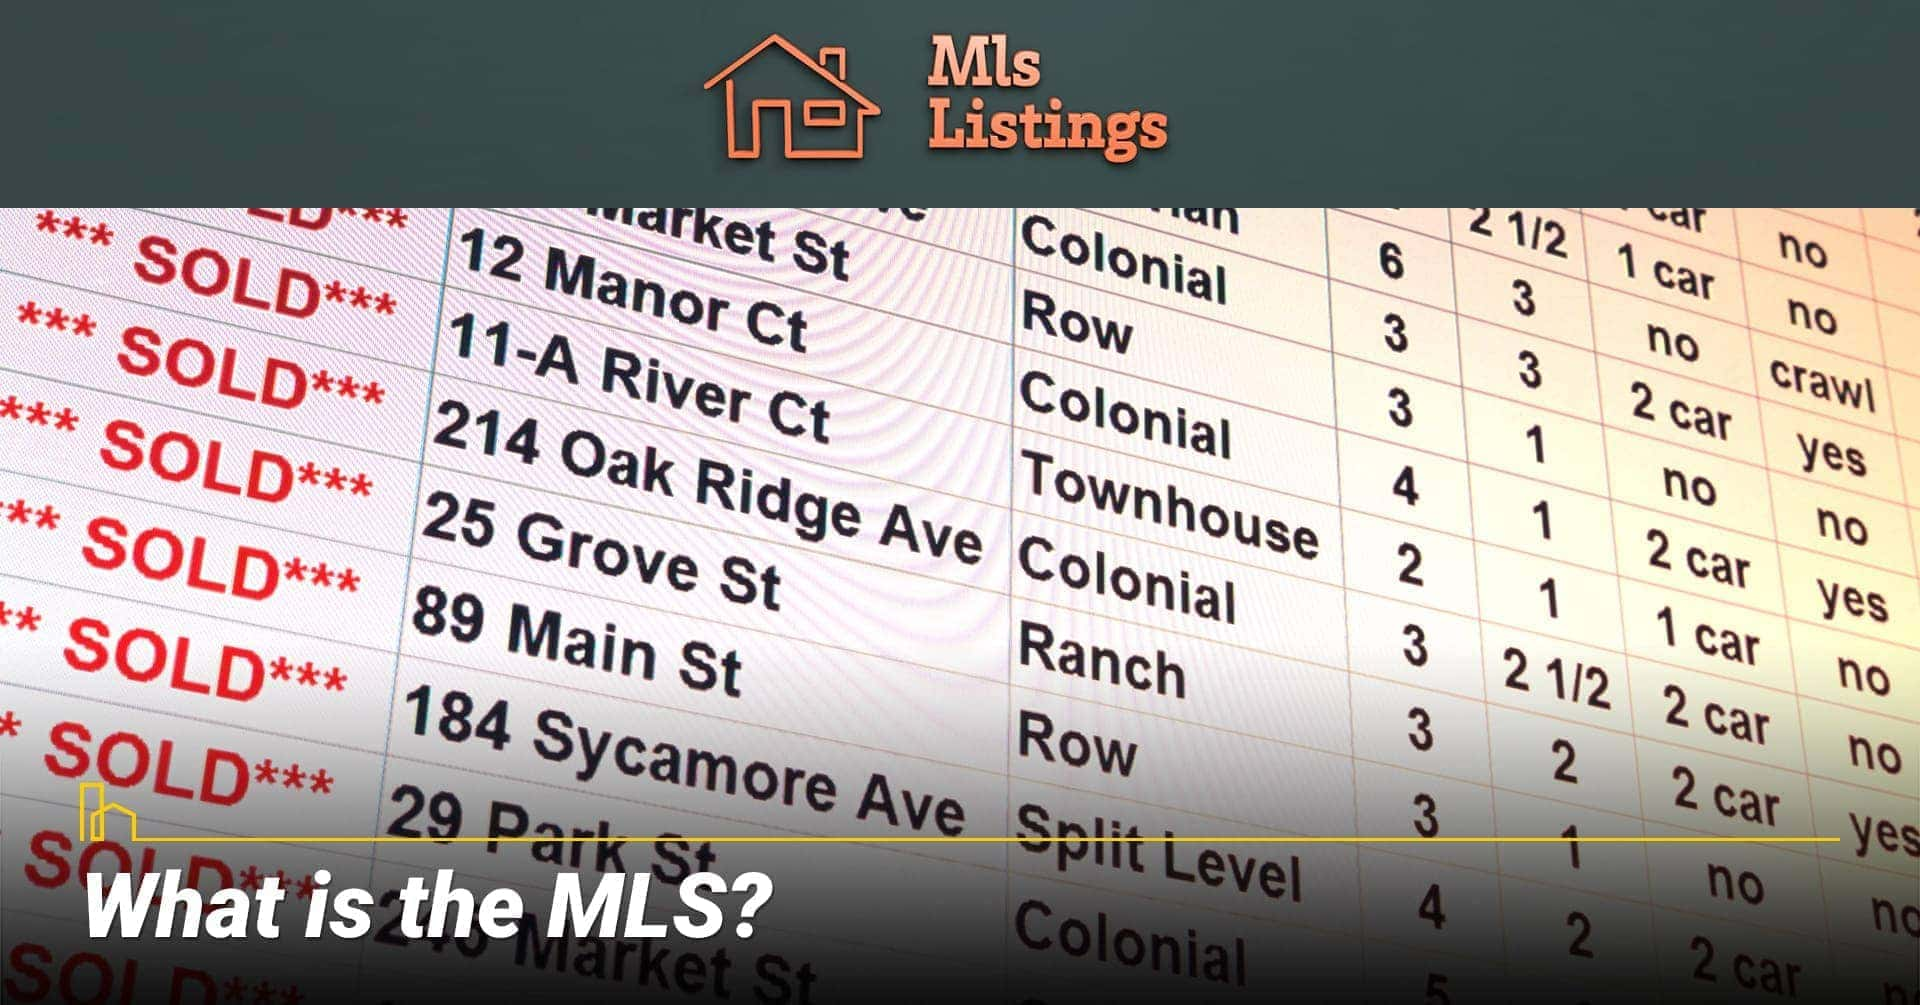 What is the MLS?